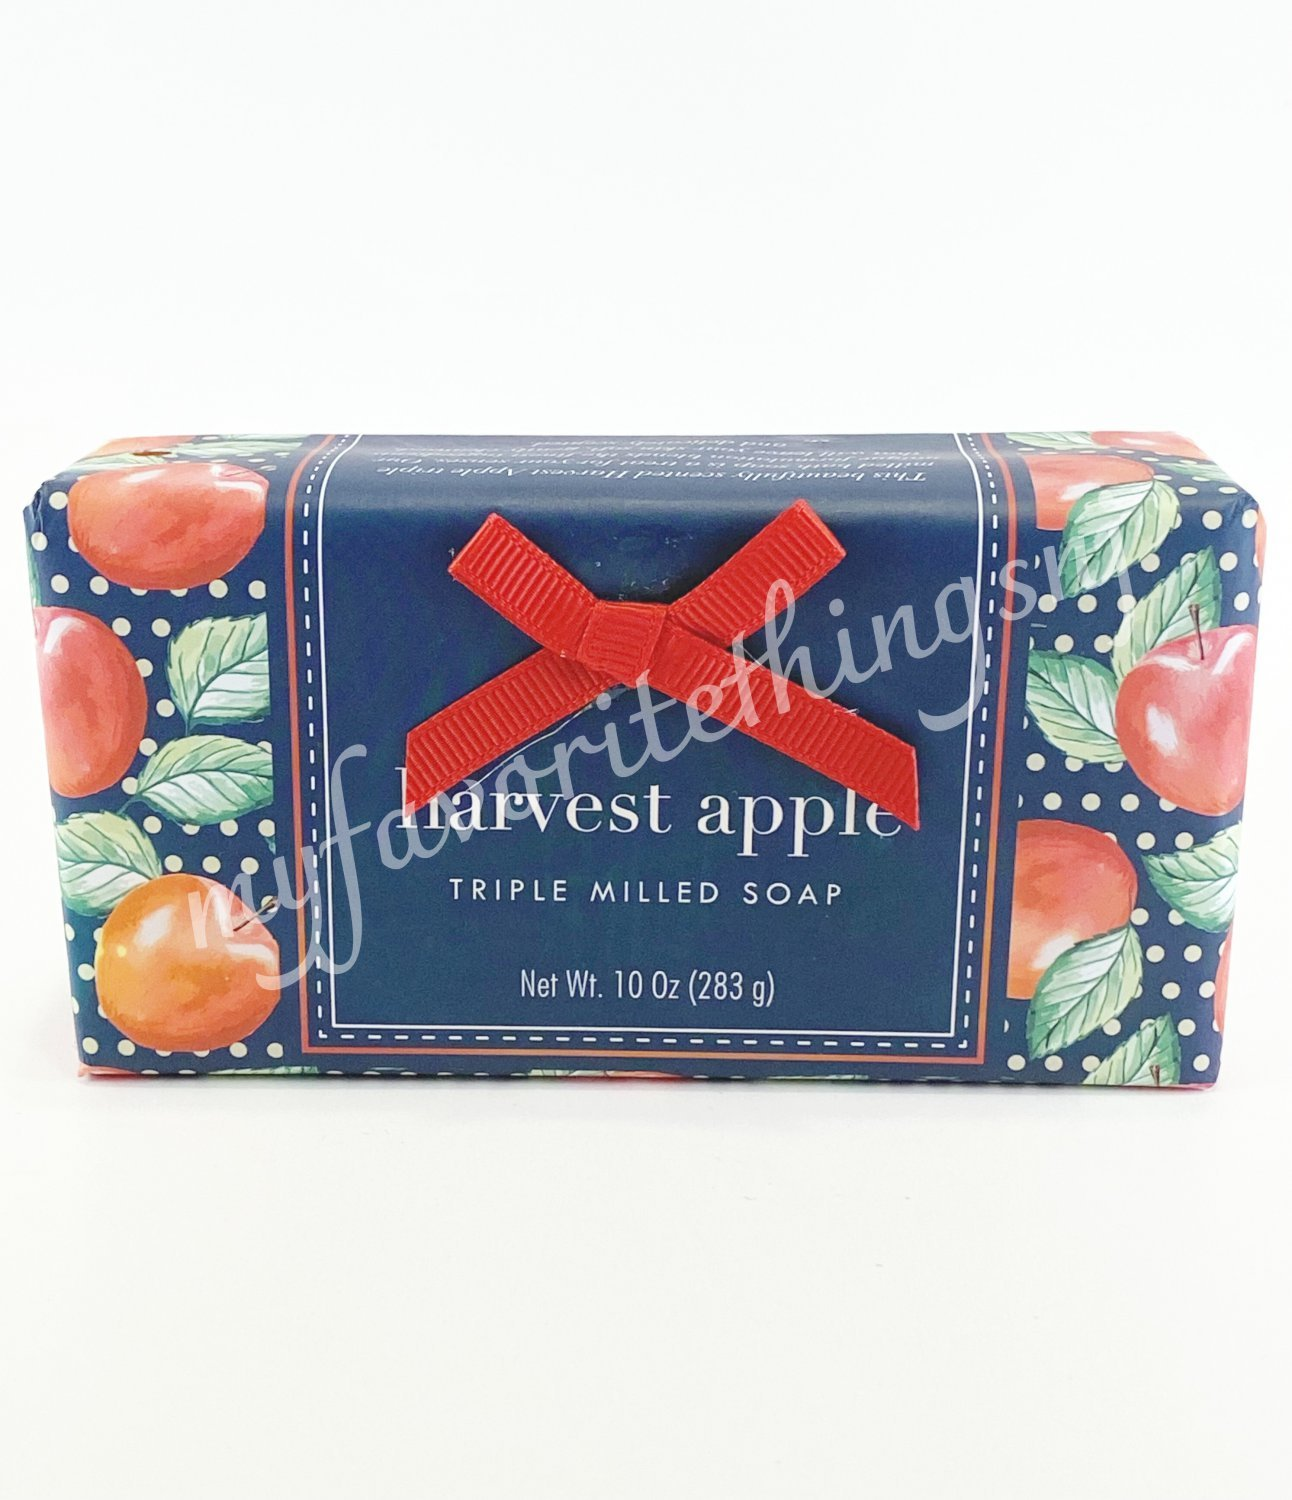 CST Harvest Apple Triple Milled Bath Bar Soap, 10 Oz - $12.00